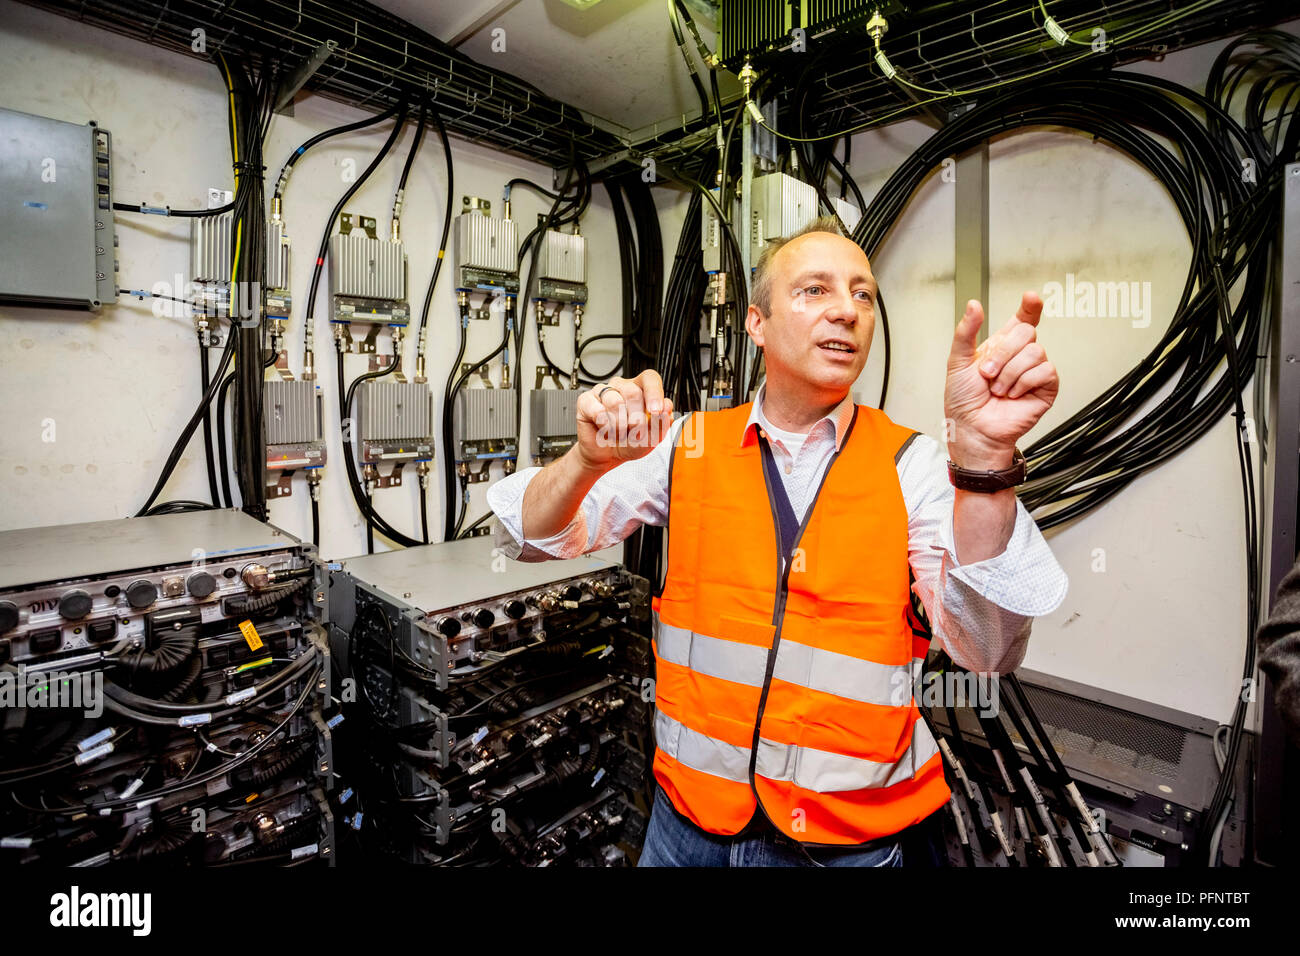 Berlin Tunnels Stock Photos Images Alamy A Mobile Radio Wiring 27 June 2018 Germany Matthias Johannes Group Leader For Special And Business